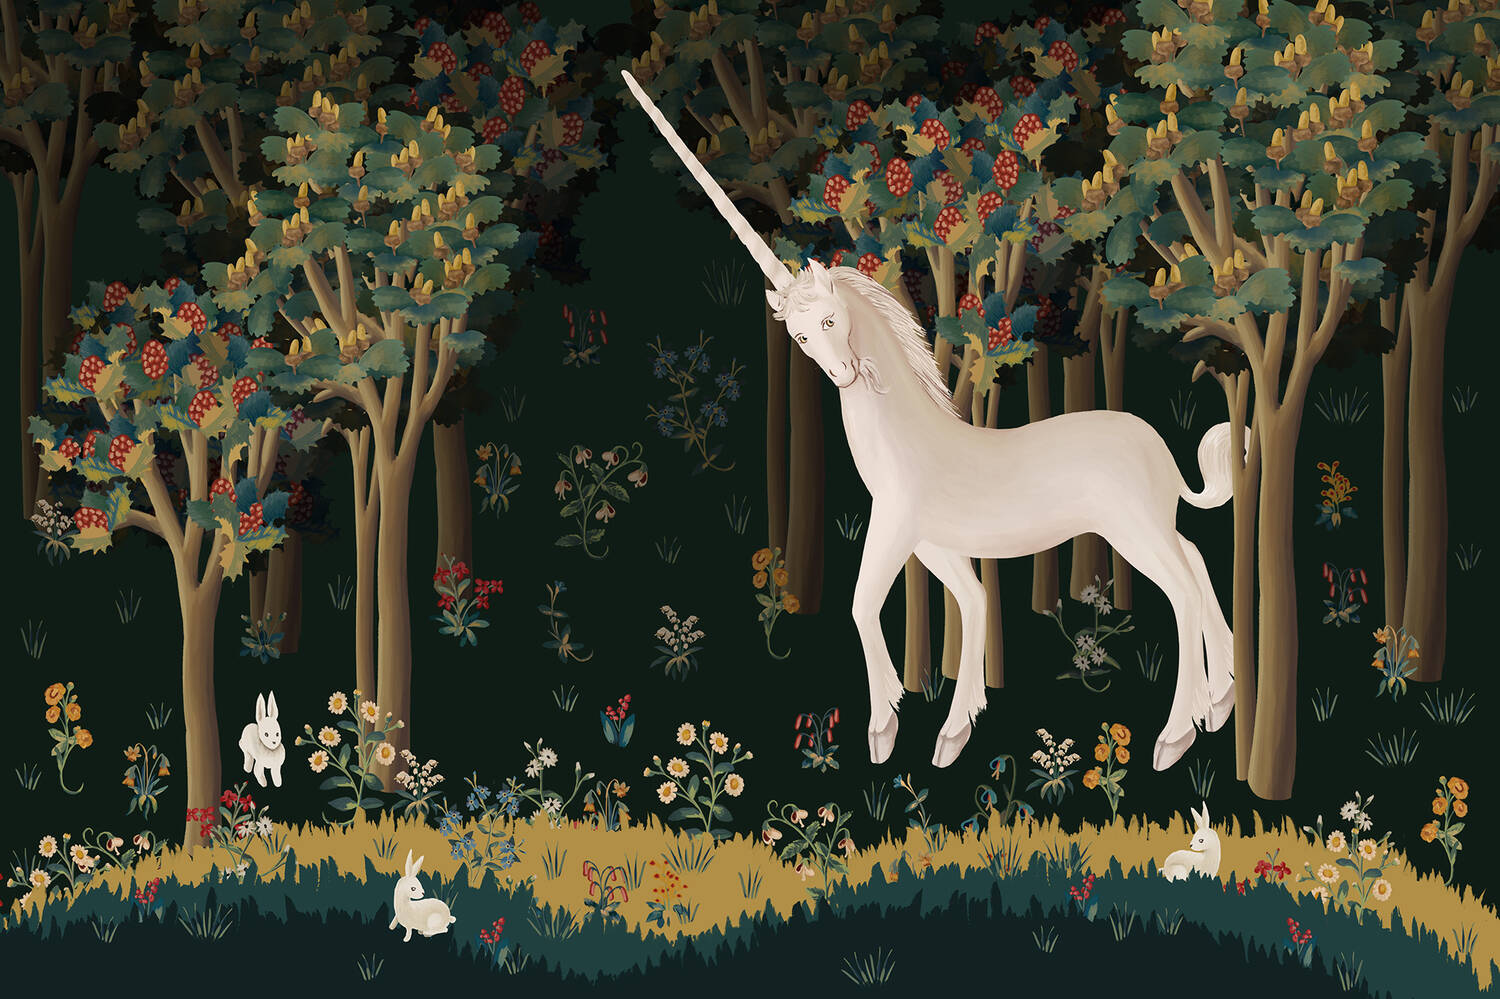 An illustration of a unicorn in a forest, surrounded by rabbits